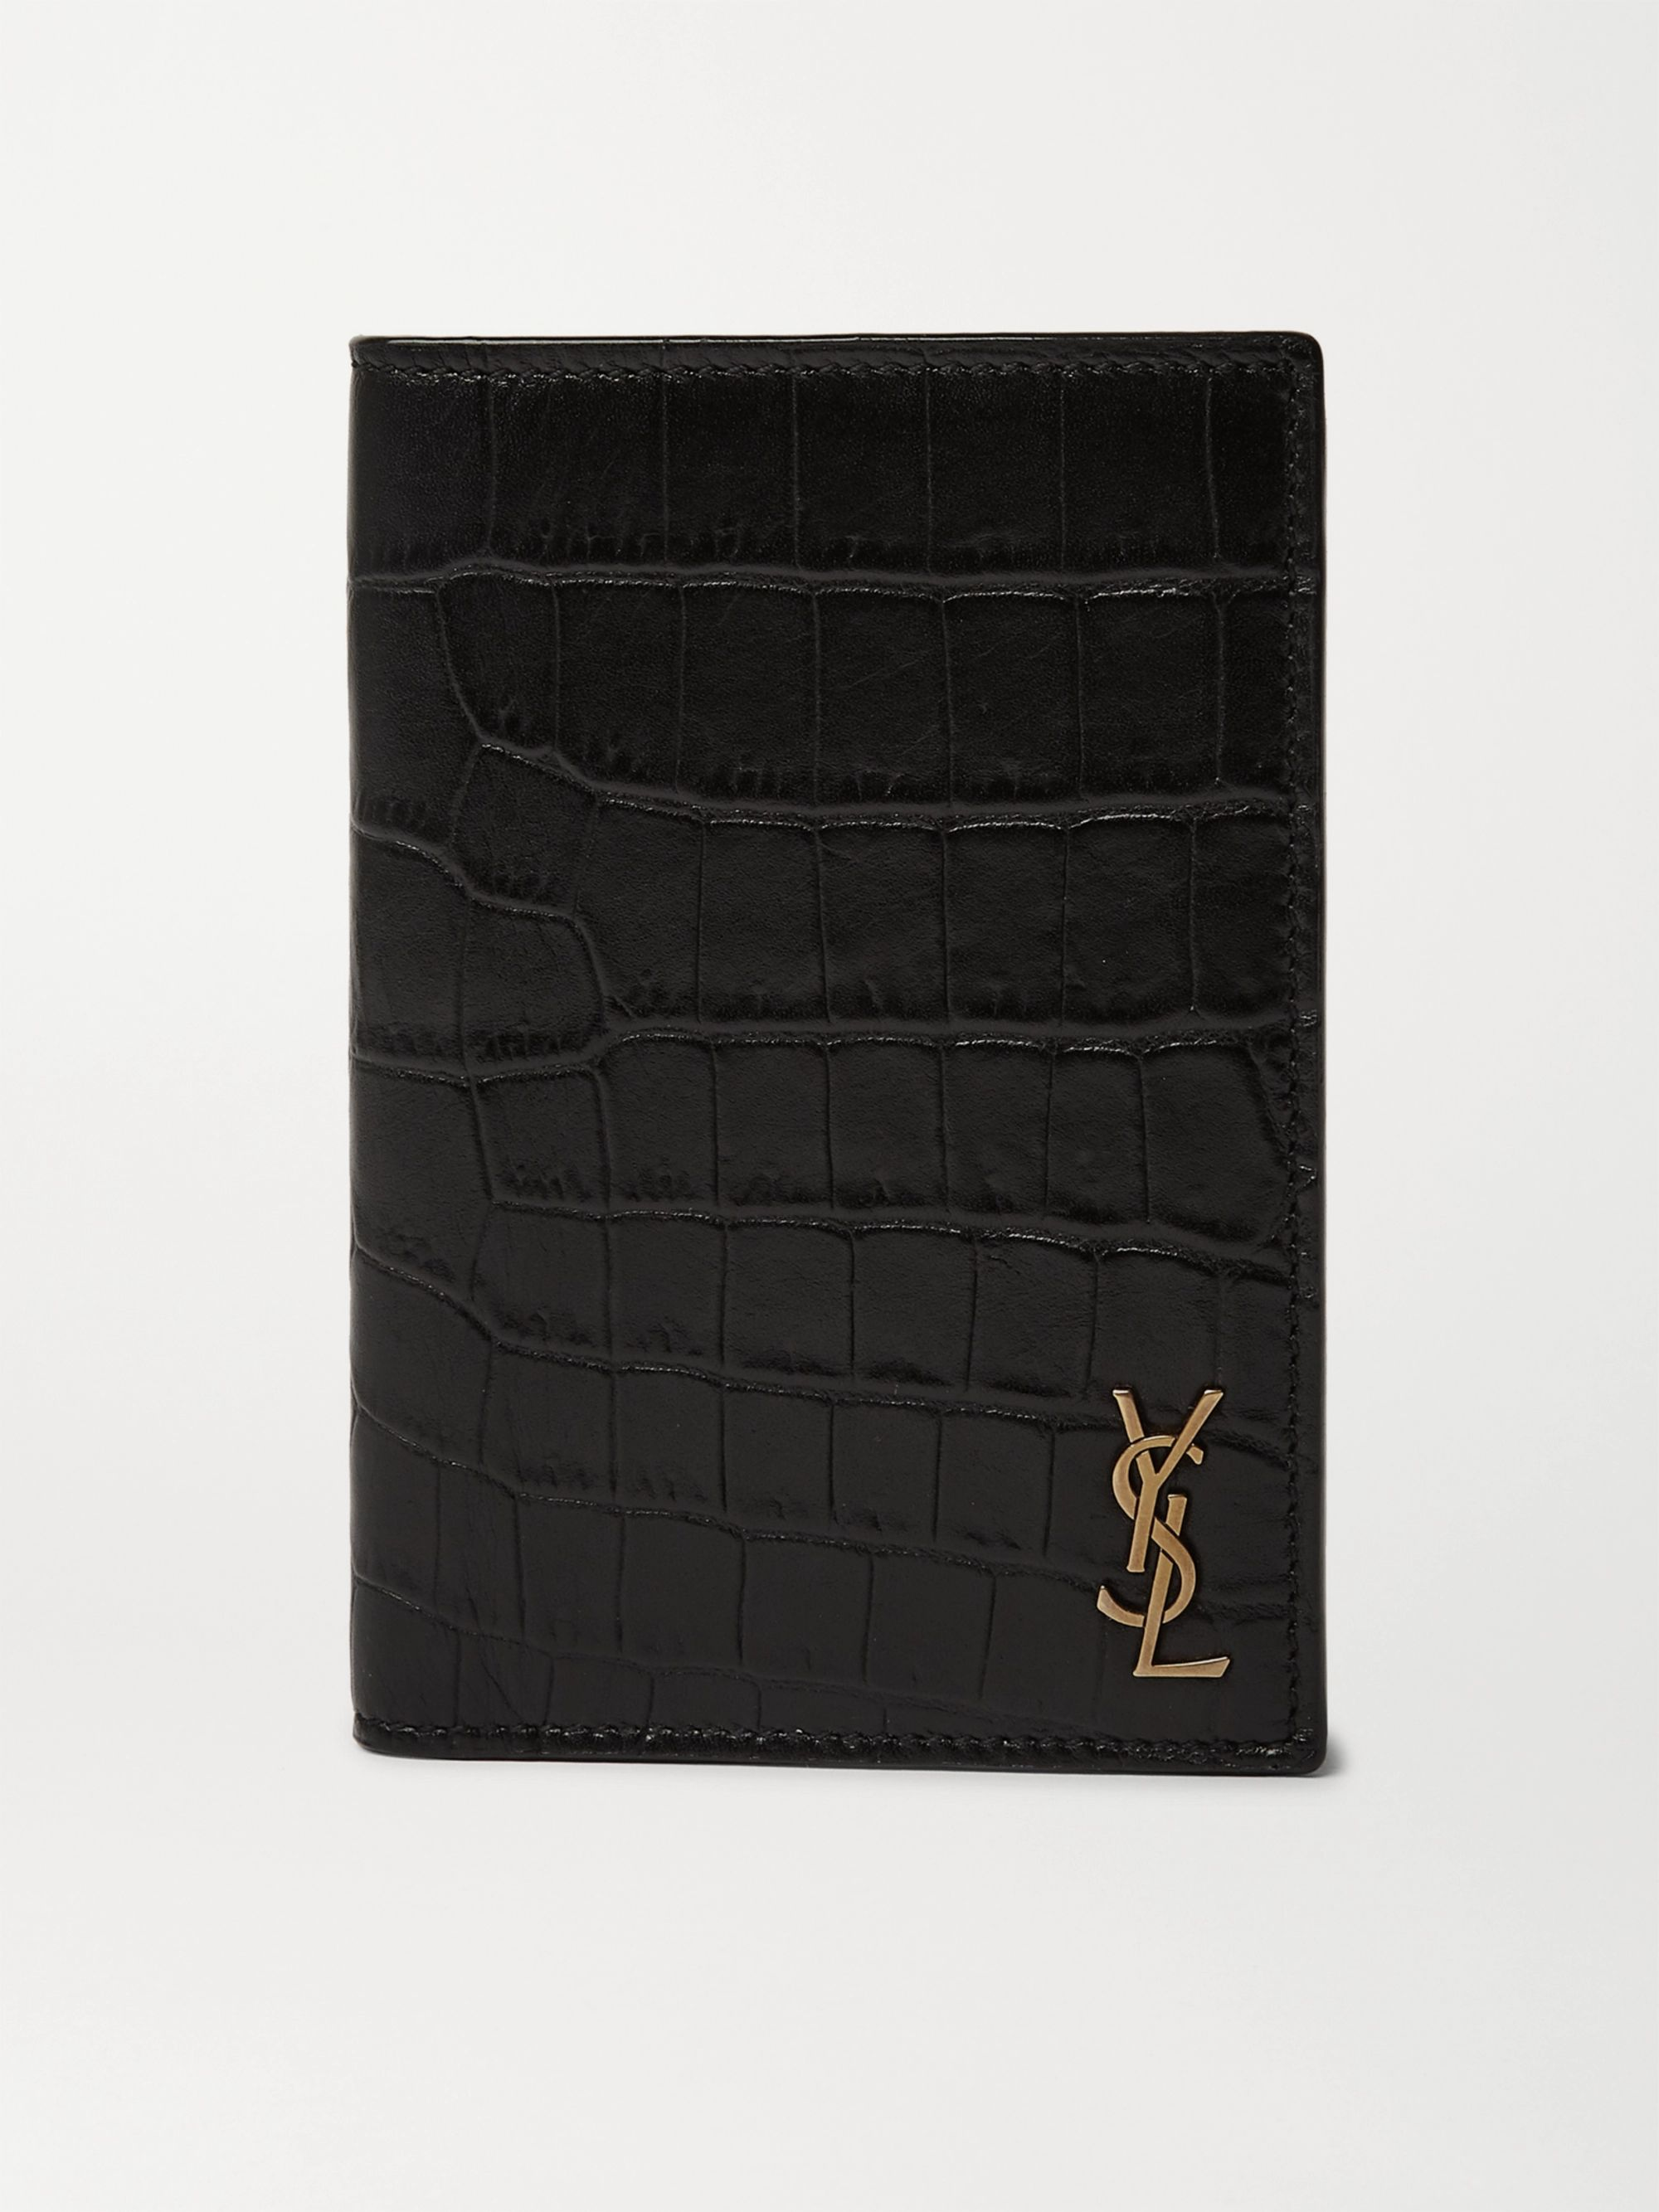 생 로랑 타이니 모노그램 반지갑 - 크로커다일 블랙 Saint Laurent Logo-Appliqued Croc-Effect Leather Billfold Wallet,Black